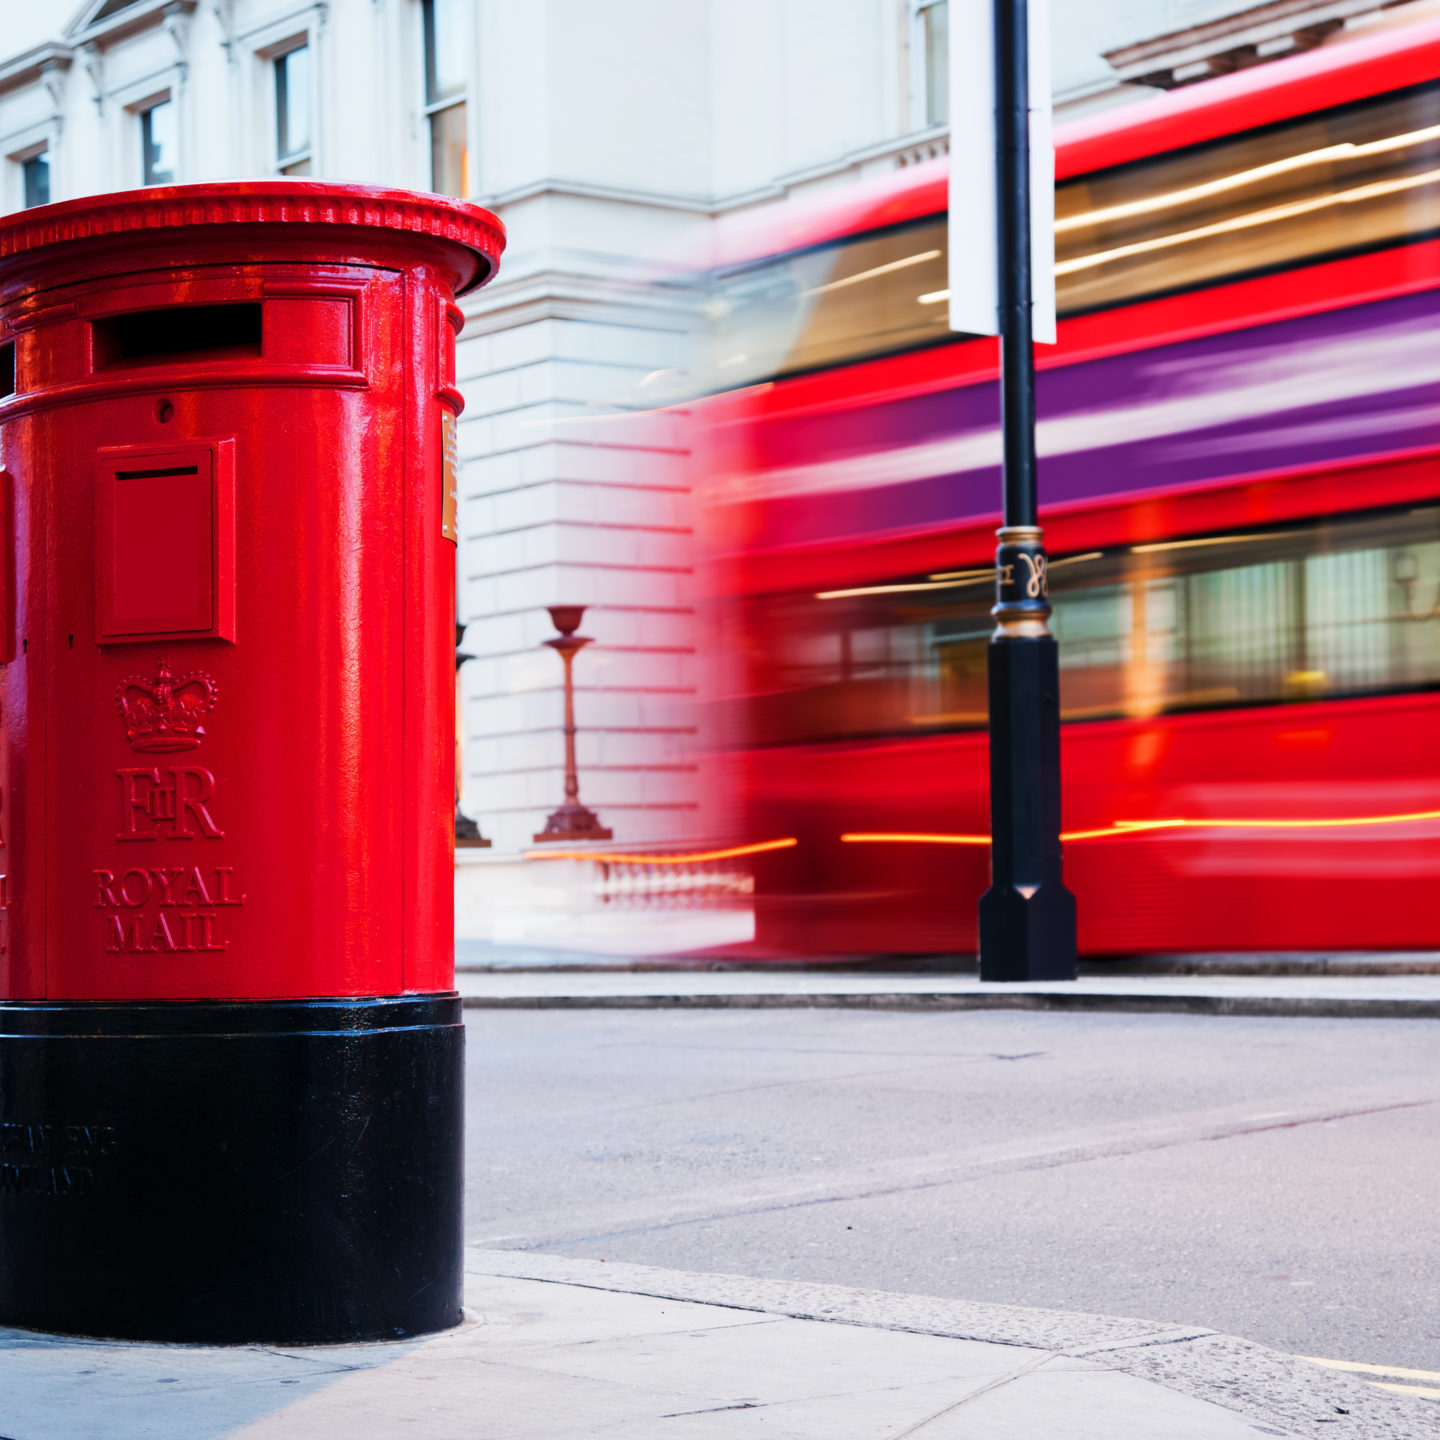 Red UK post box